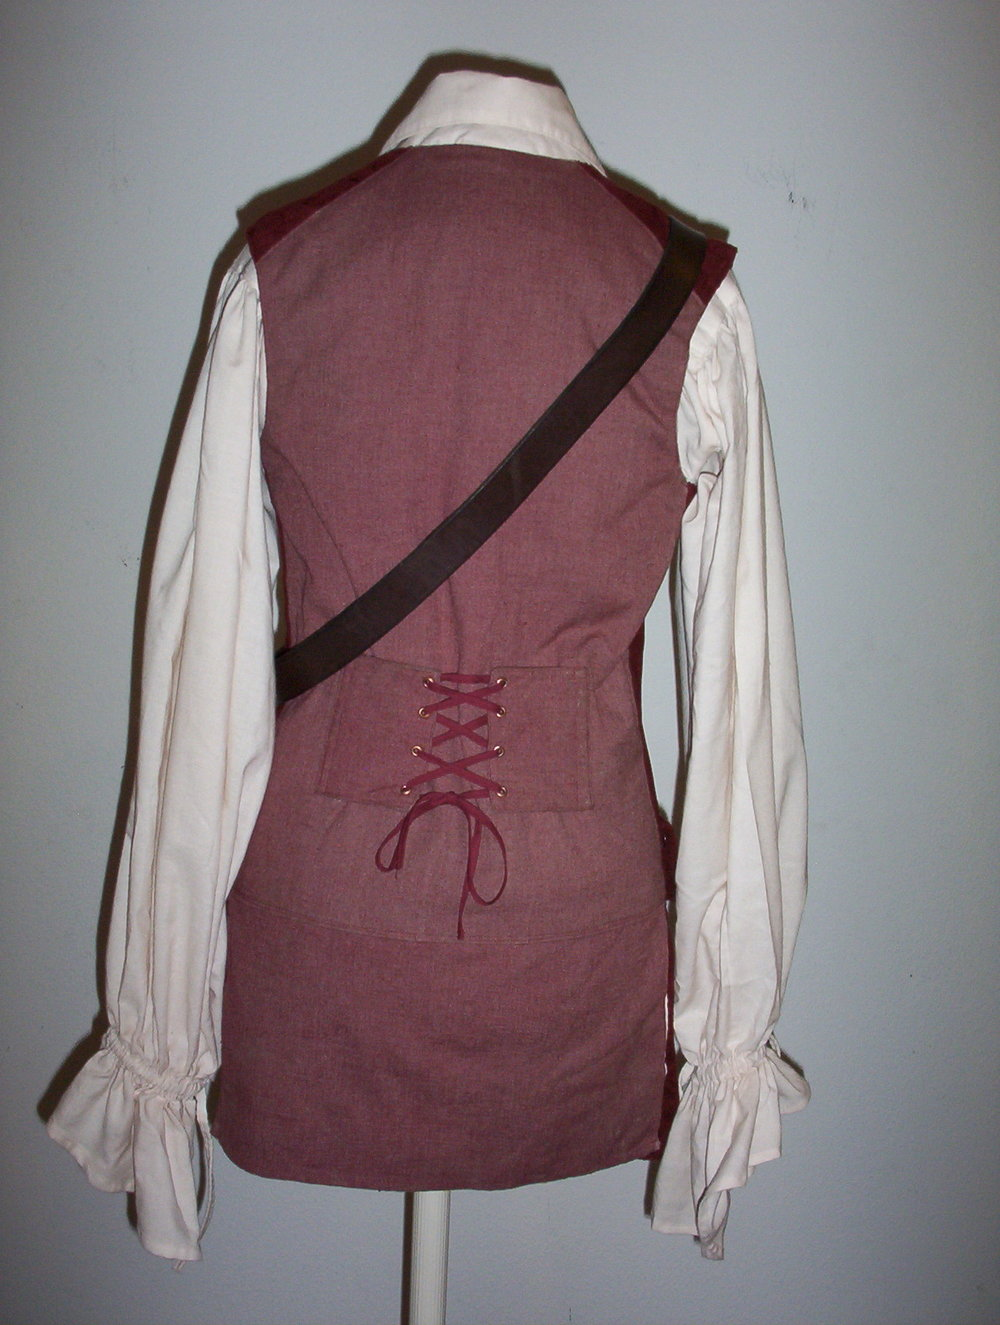 Pirate costume2 3009 (5).jpg